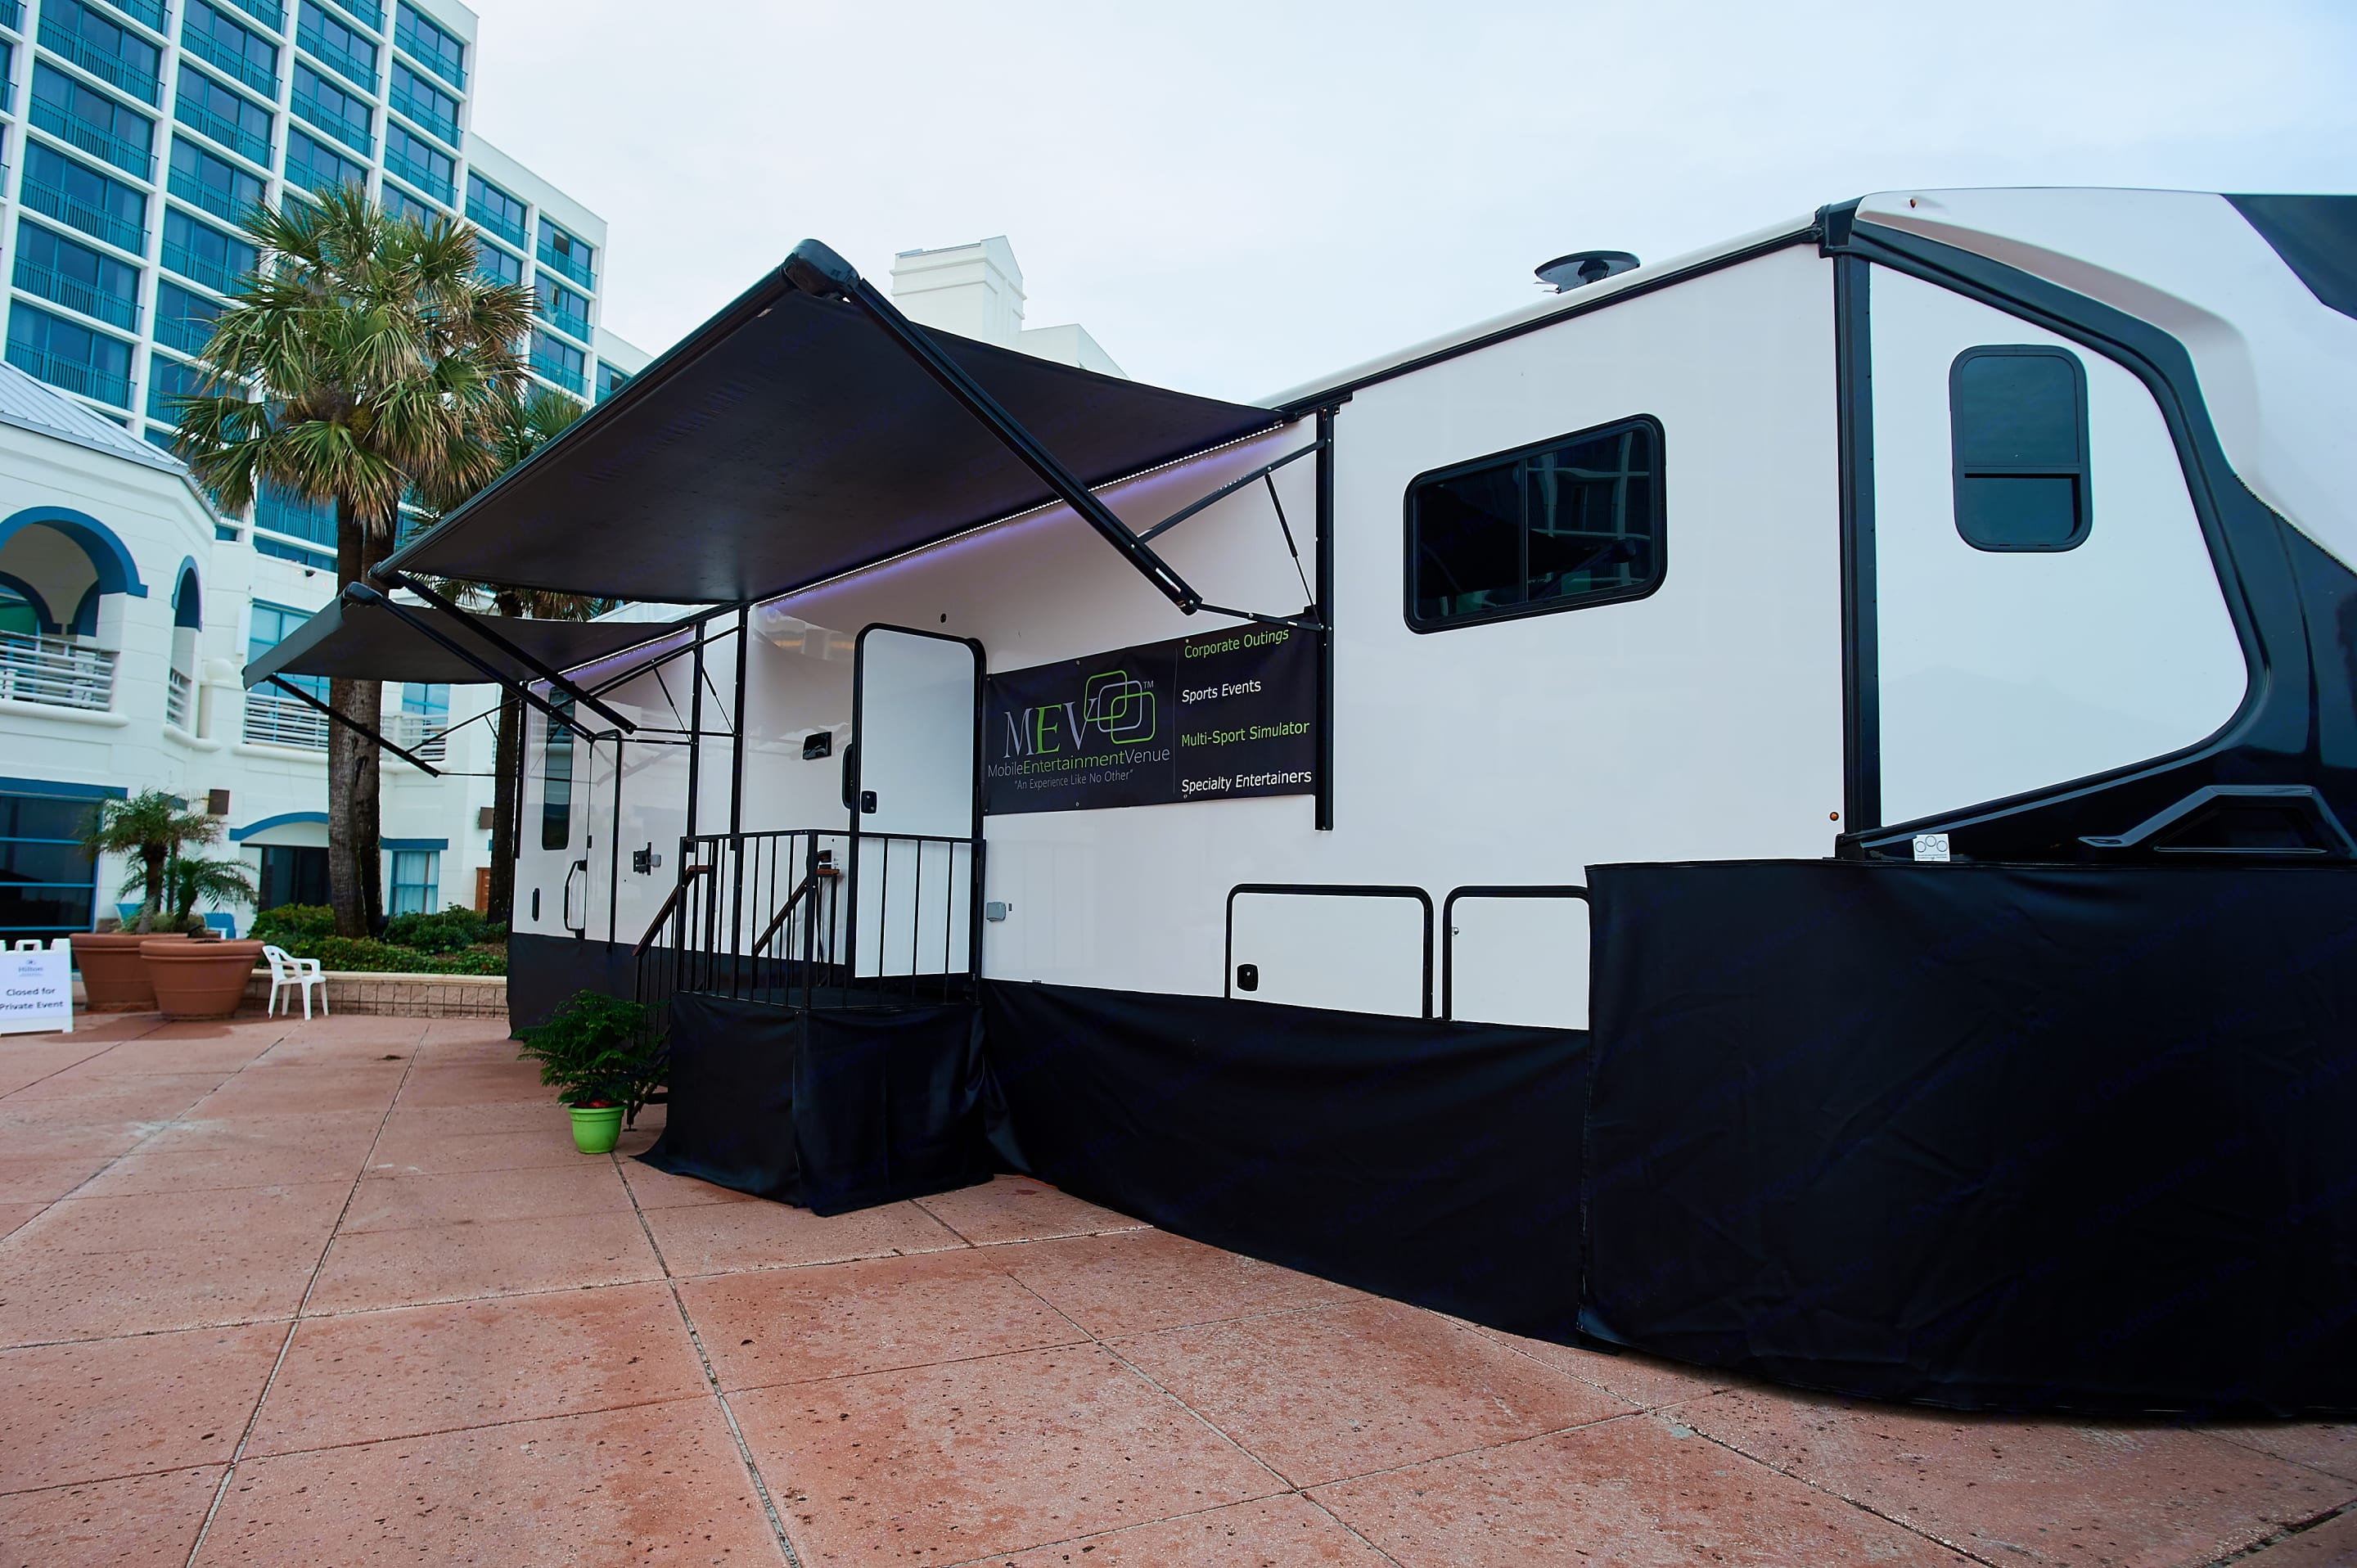 45' Mobile Hospitality Suite. Forest River Nitro Xlr 2017